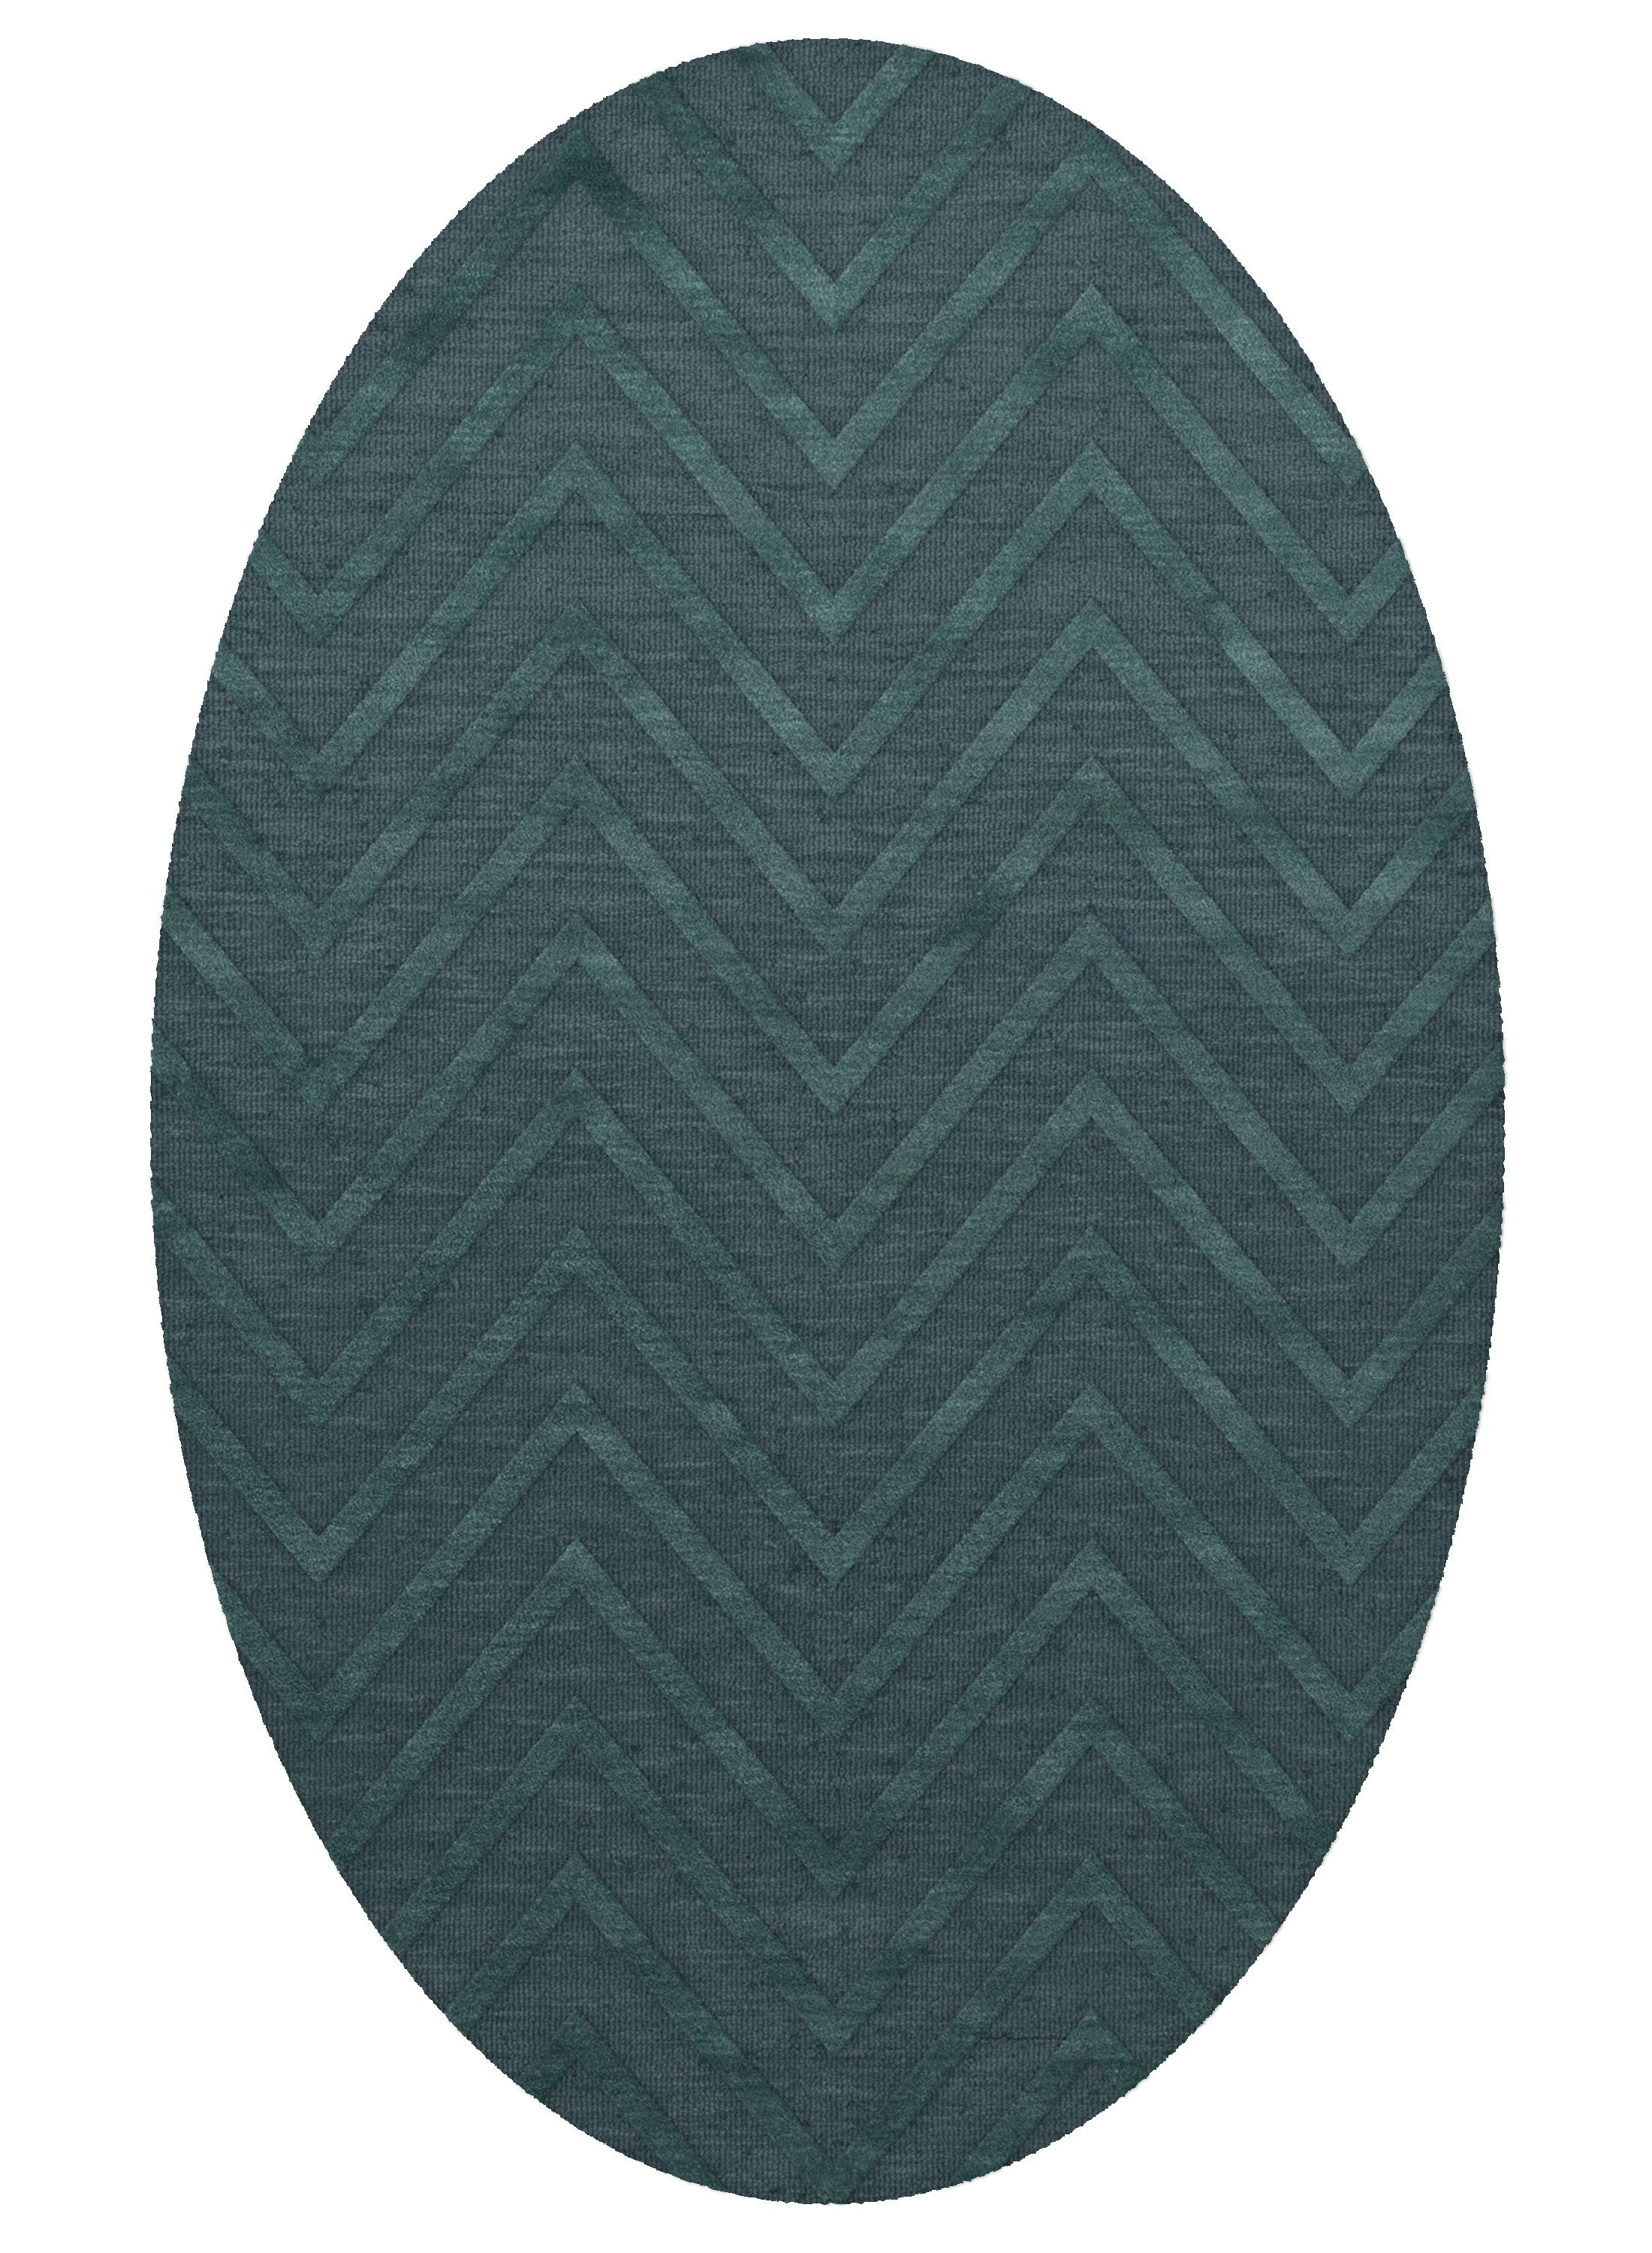 Dover Tufted Wool Teal Area Rug Rug Size: Oval 8' x 10'